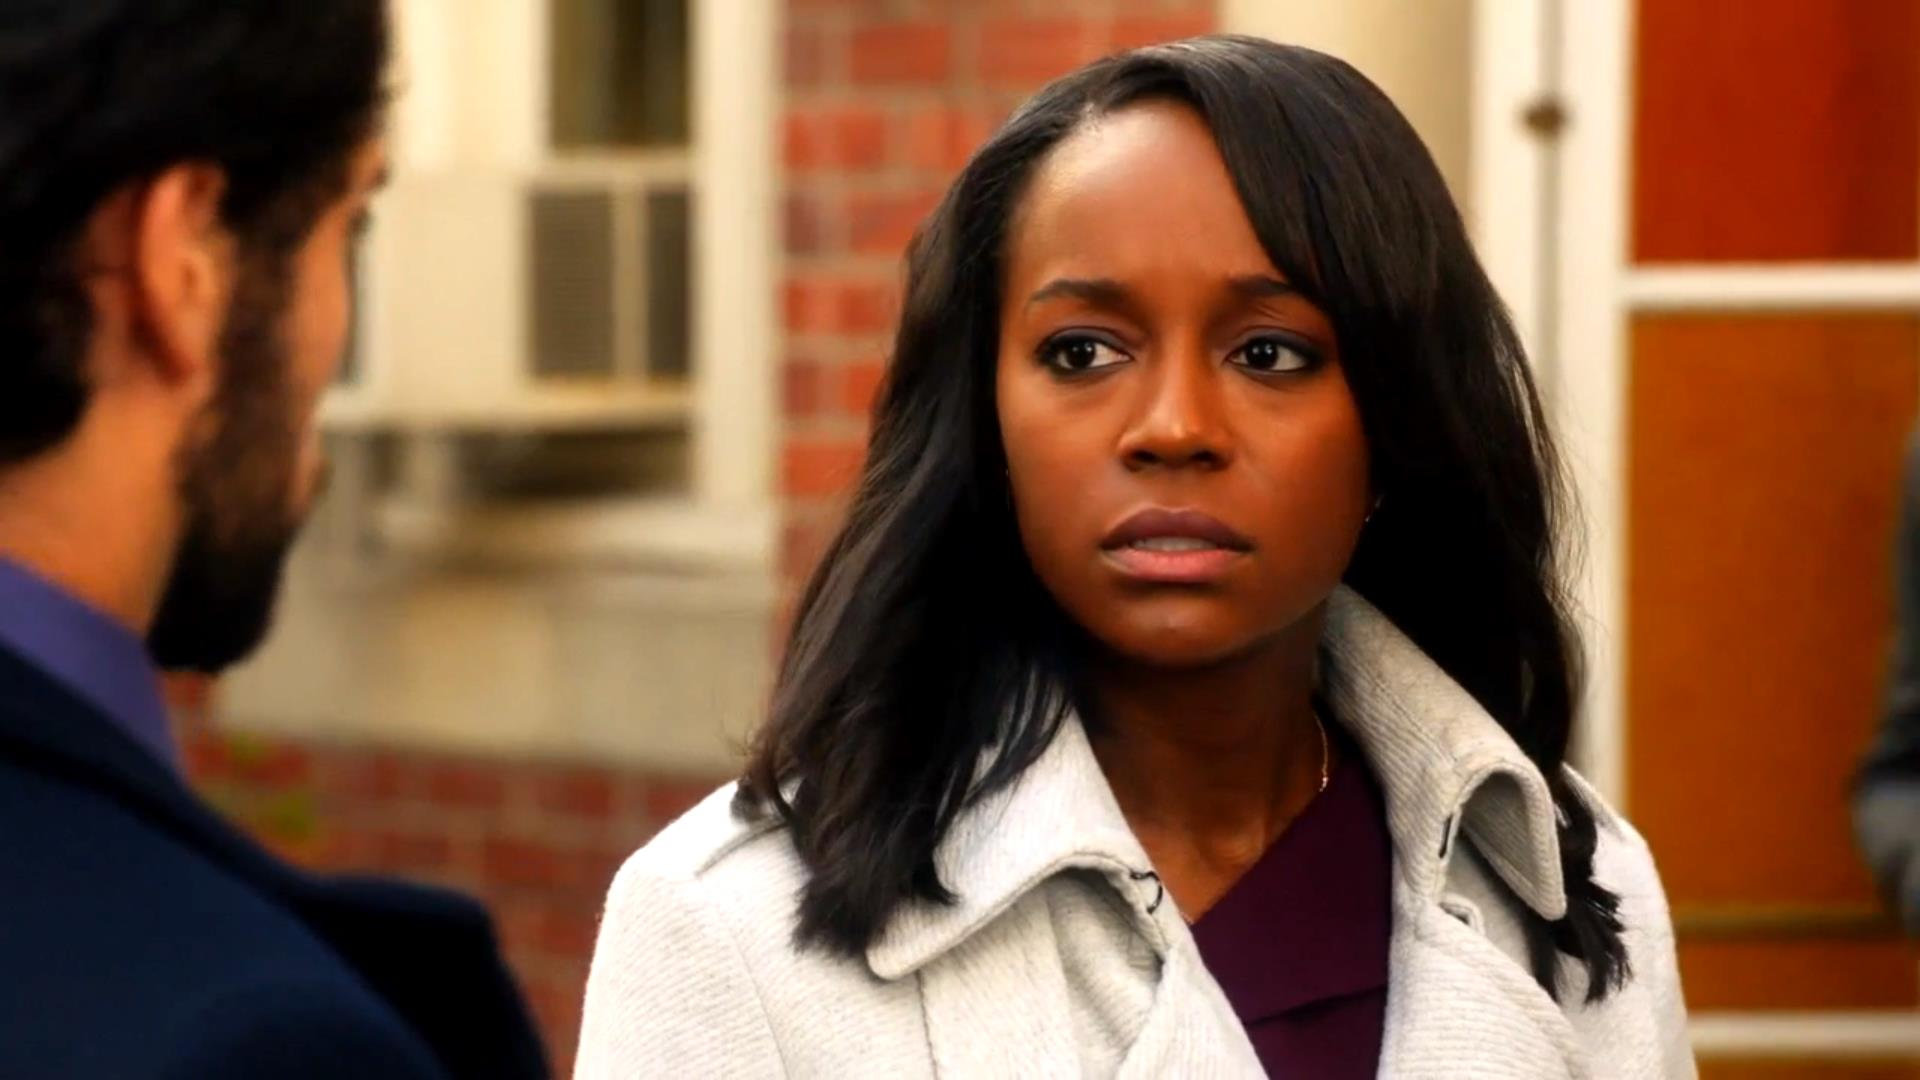 'How To Get Away With Murder' 3×12 'Go Cry Somewhere Else' Captures